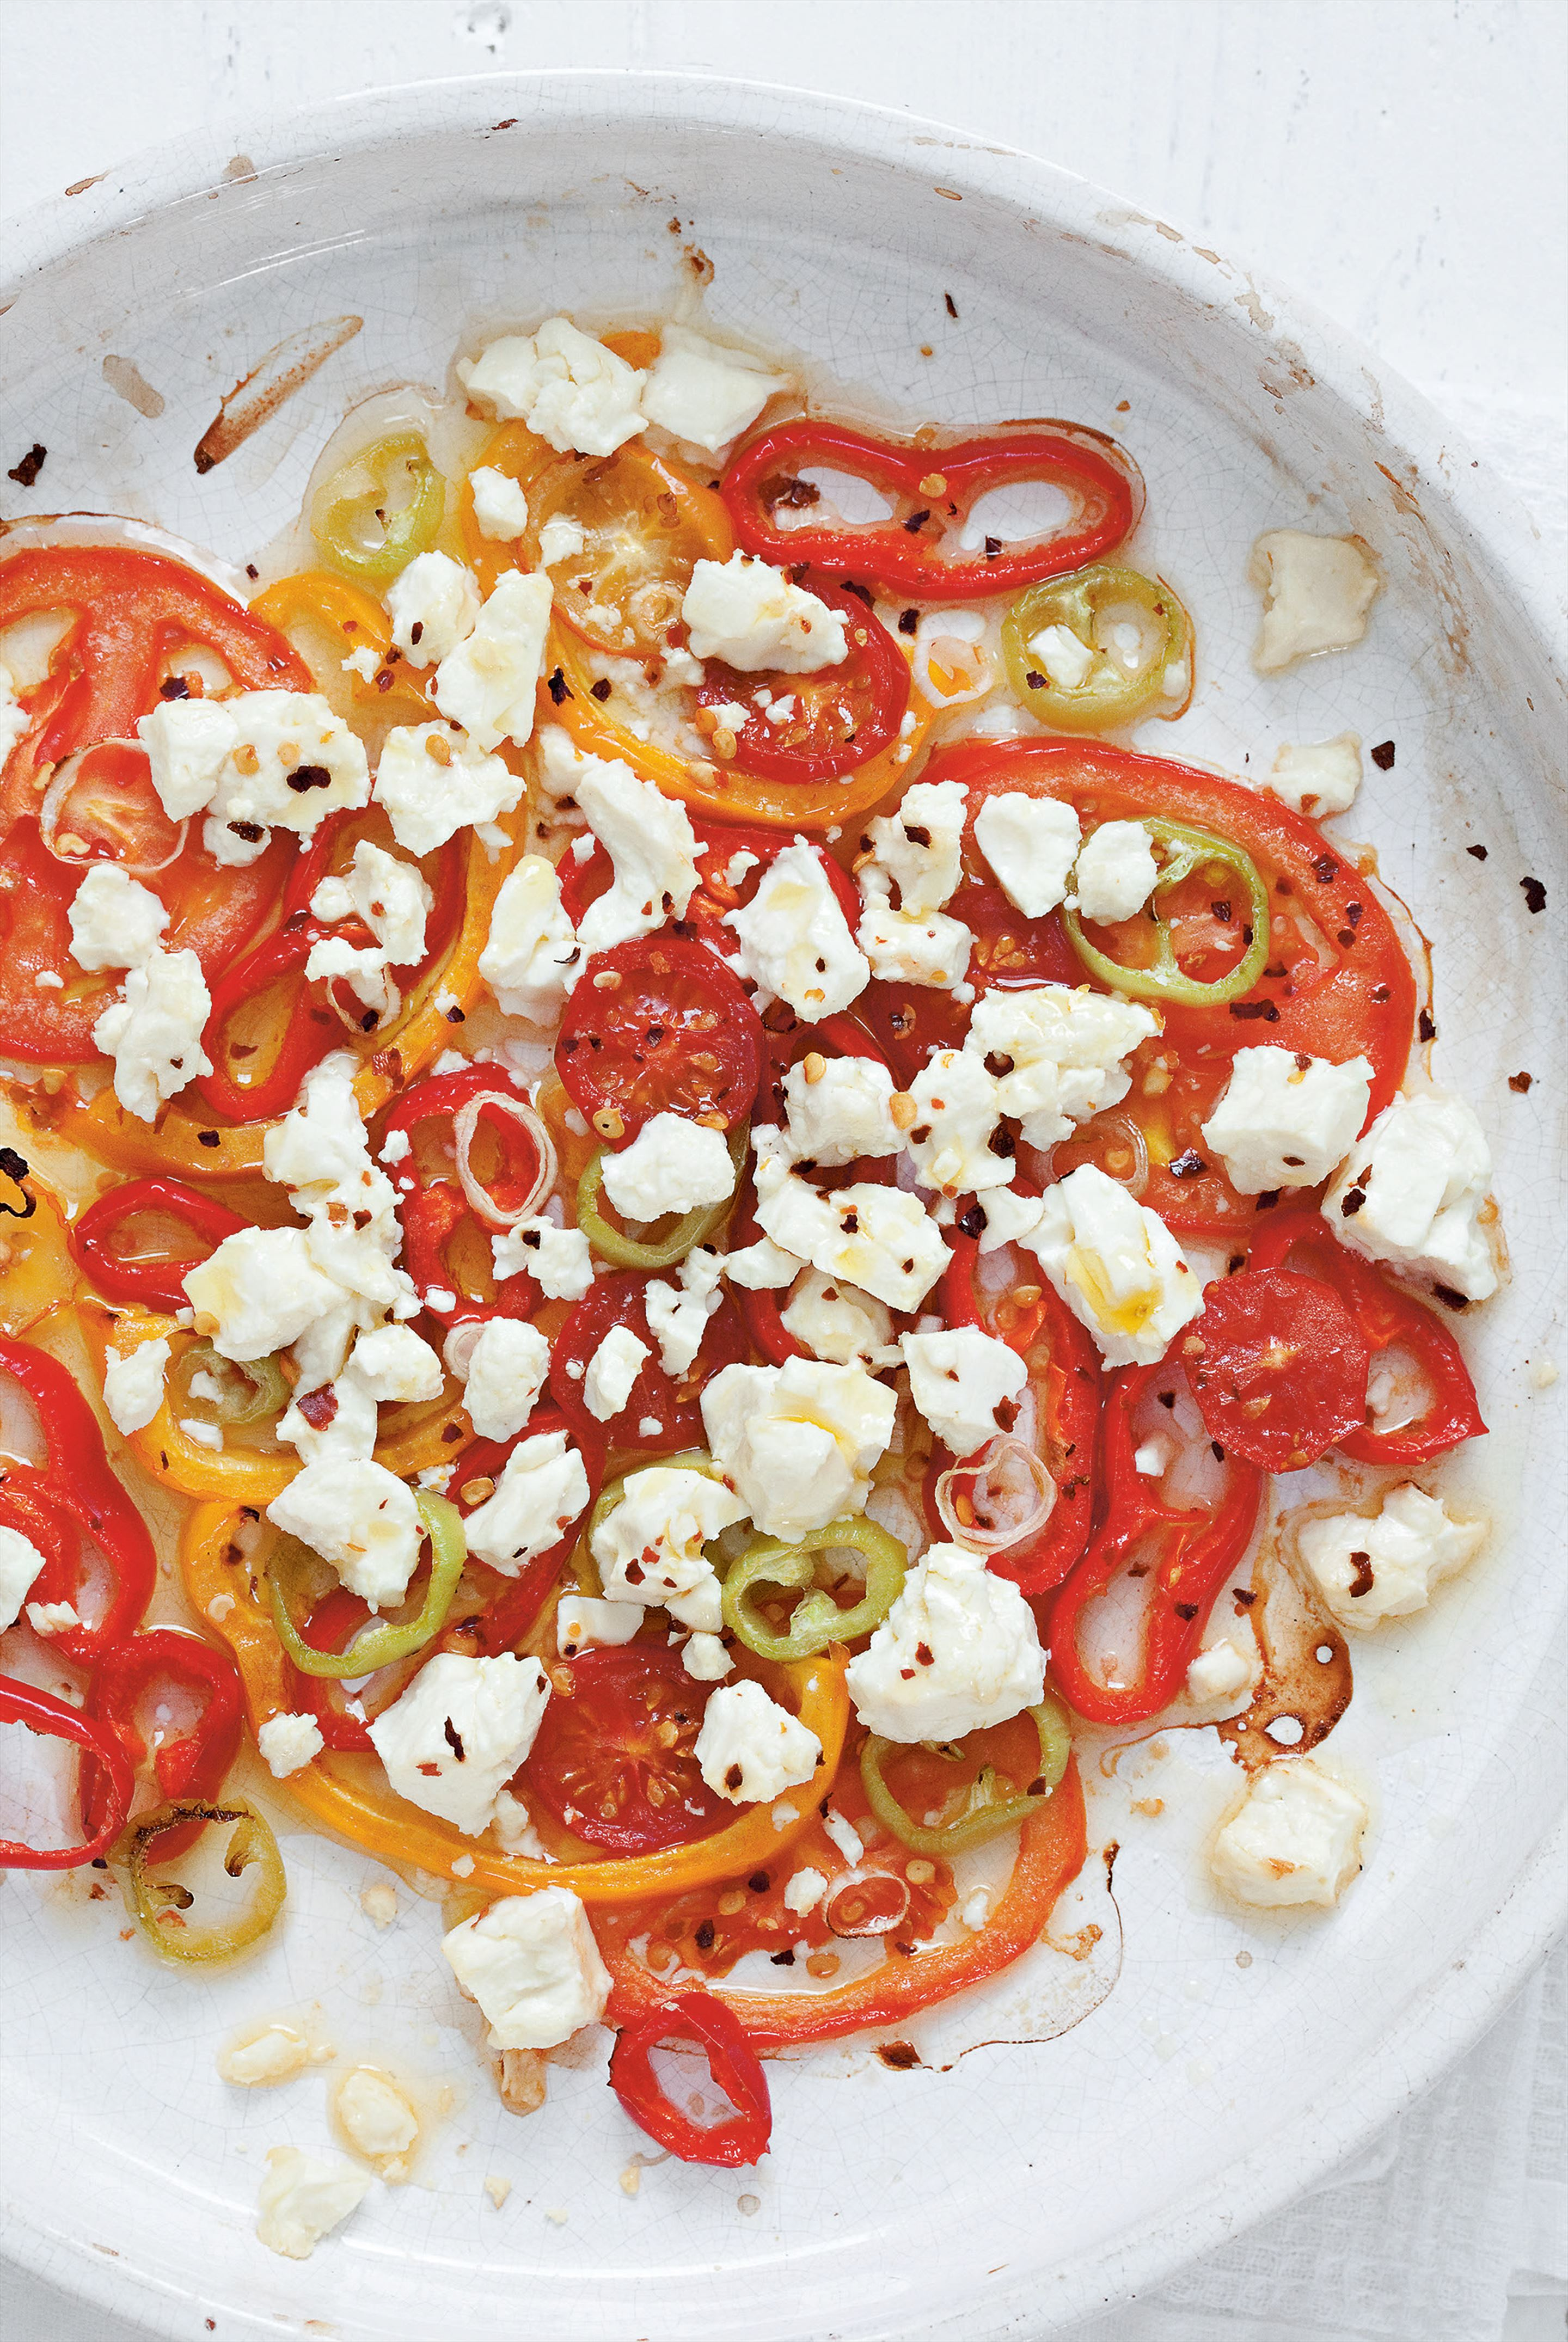 Feta baked in the oven